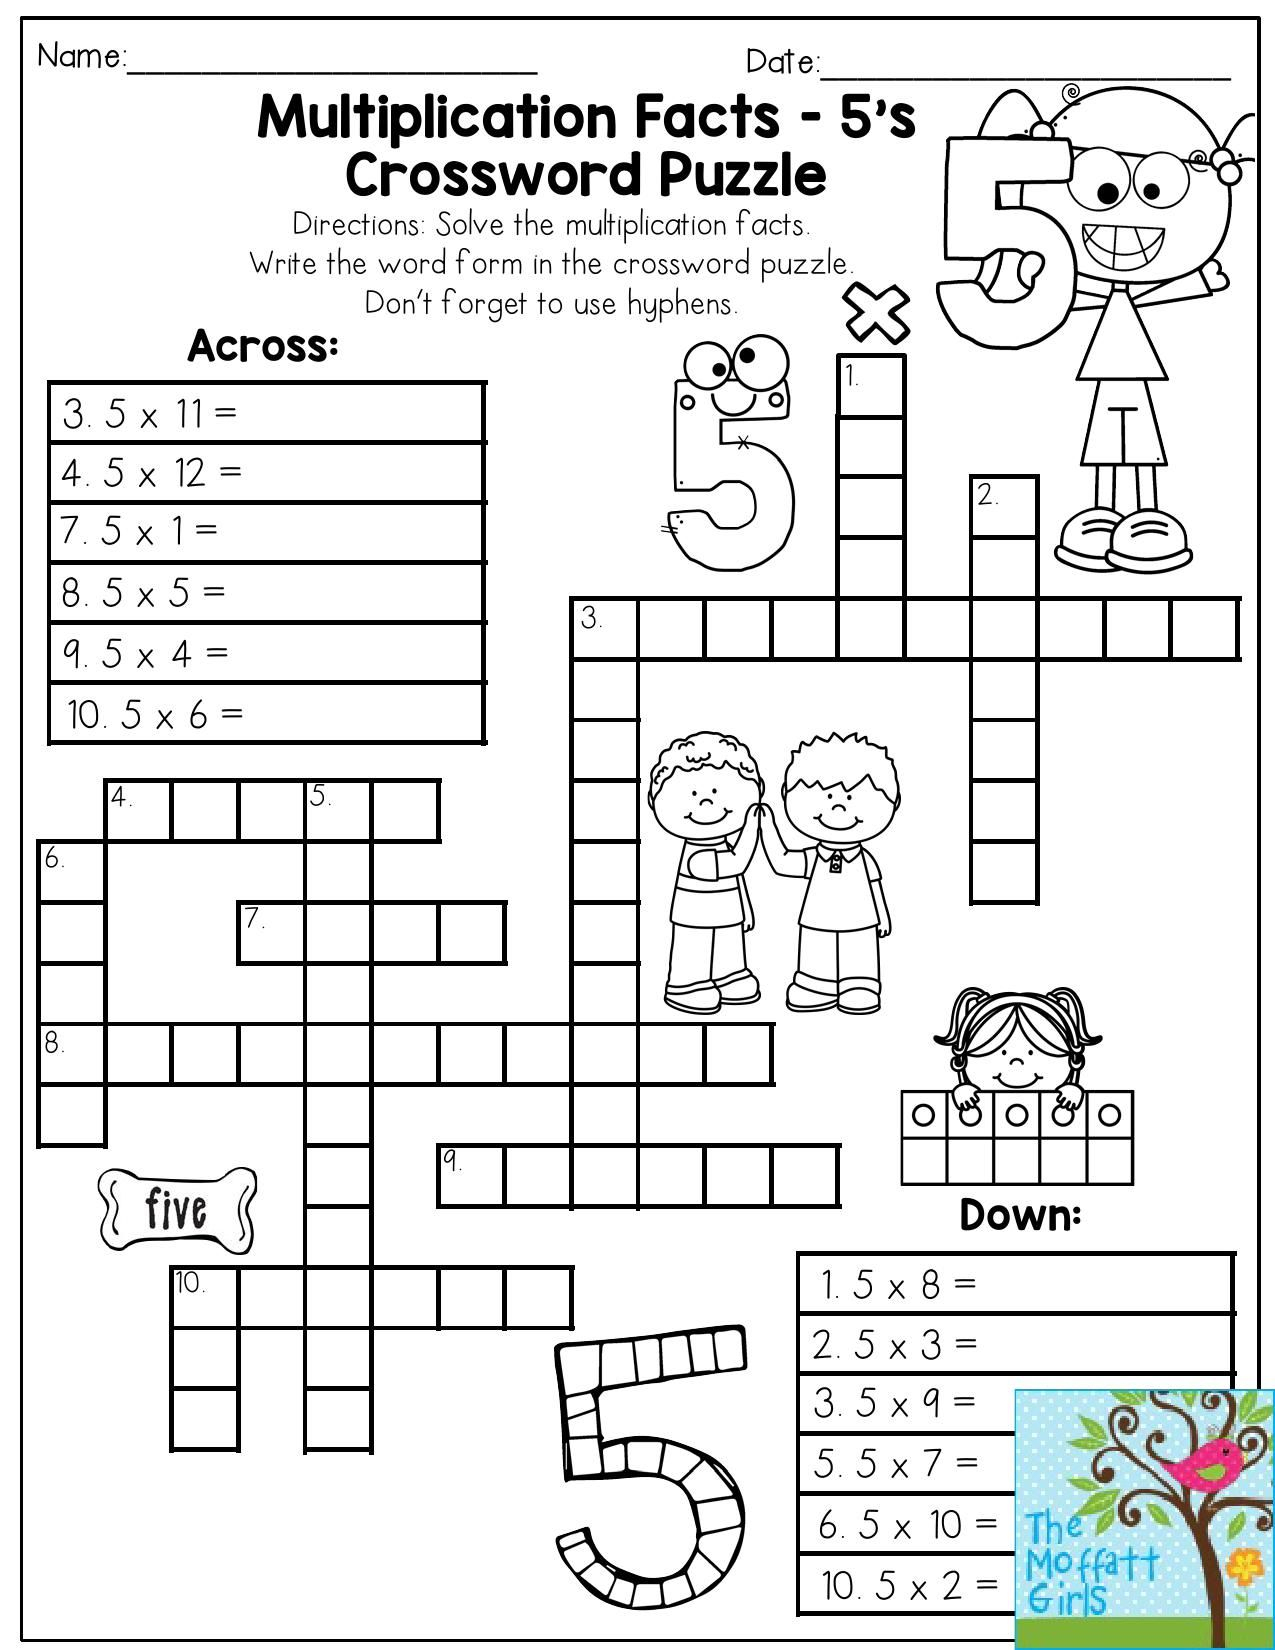 Multiplication Facts Crossword Puzzle- Third Grade Students Love - Printable Crossword Puzzles Grade 3